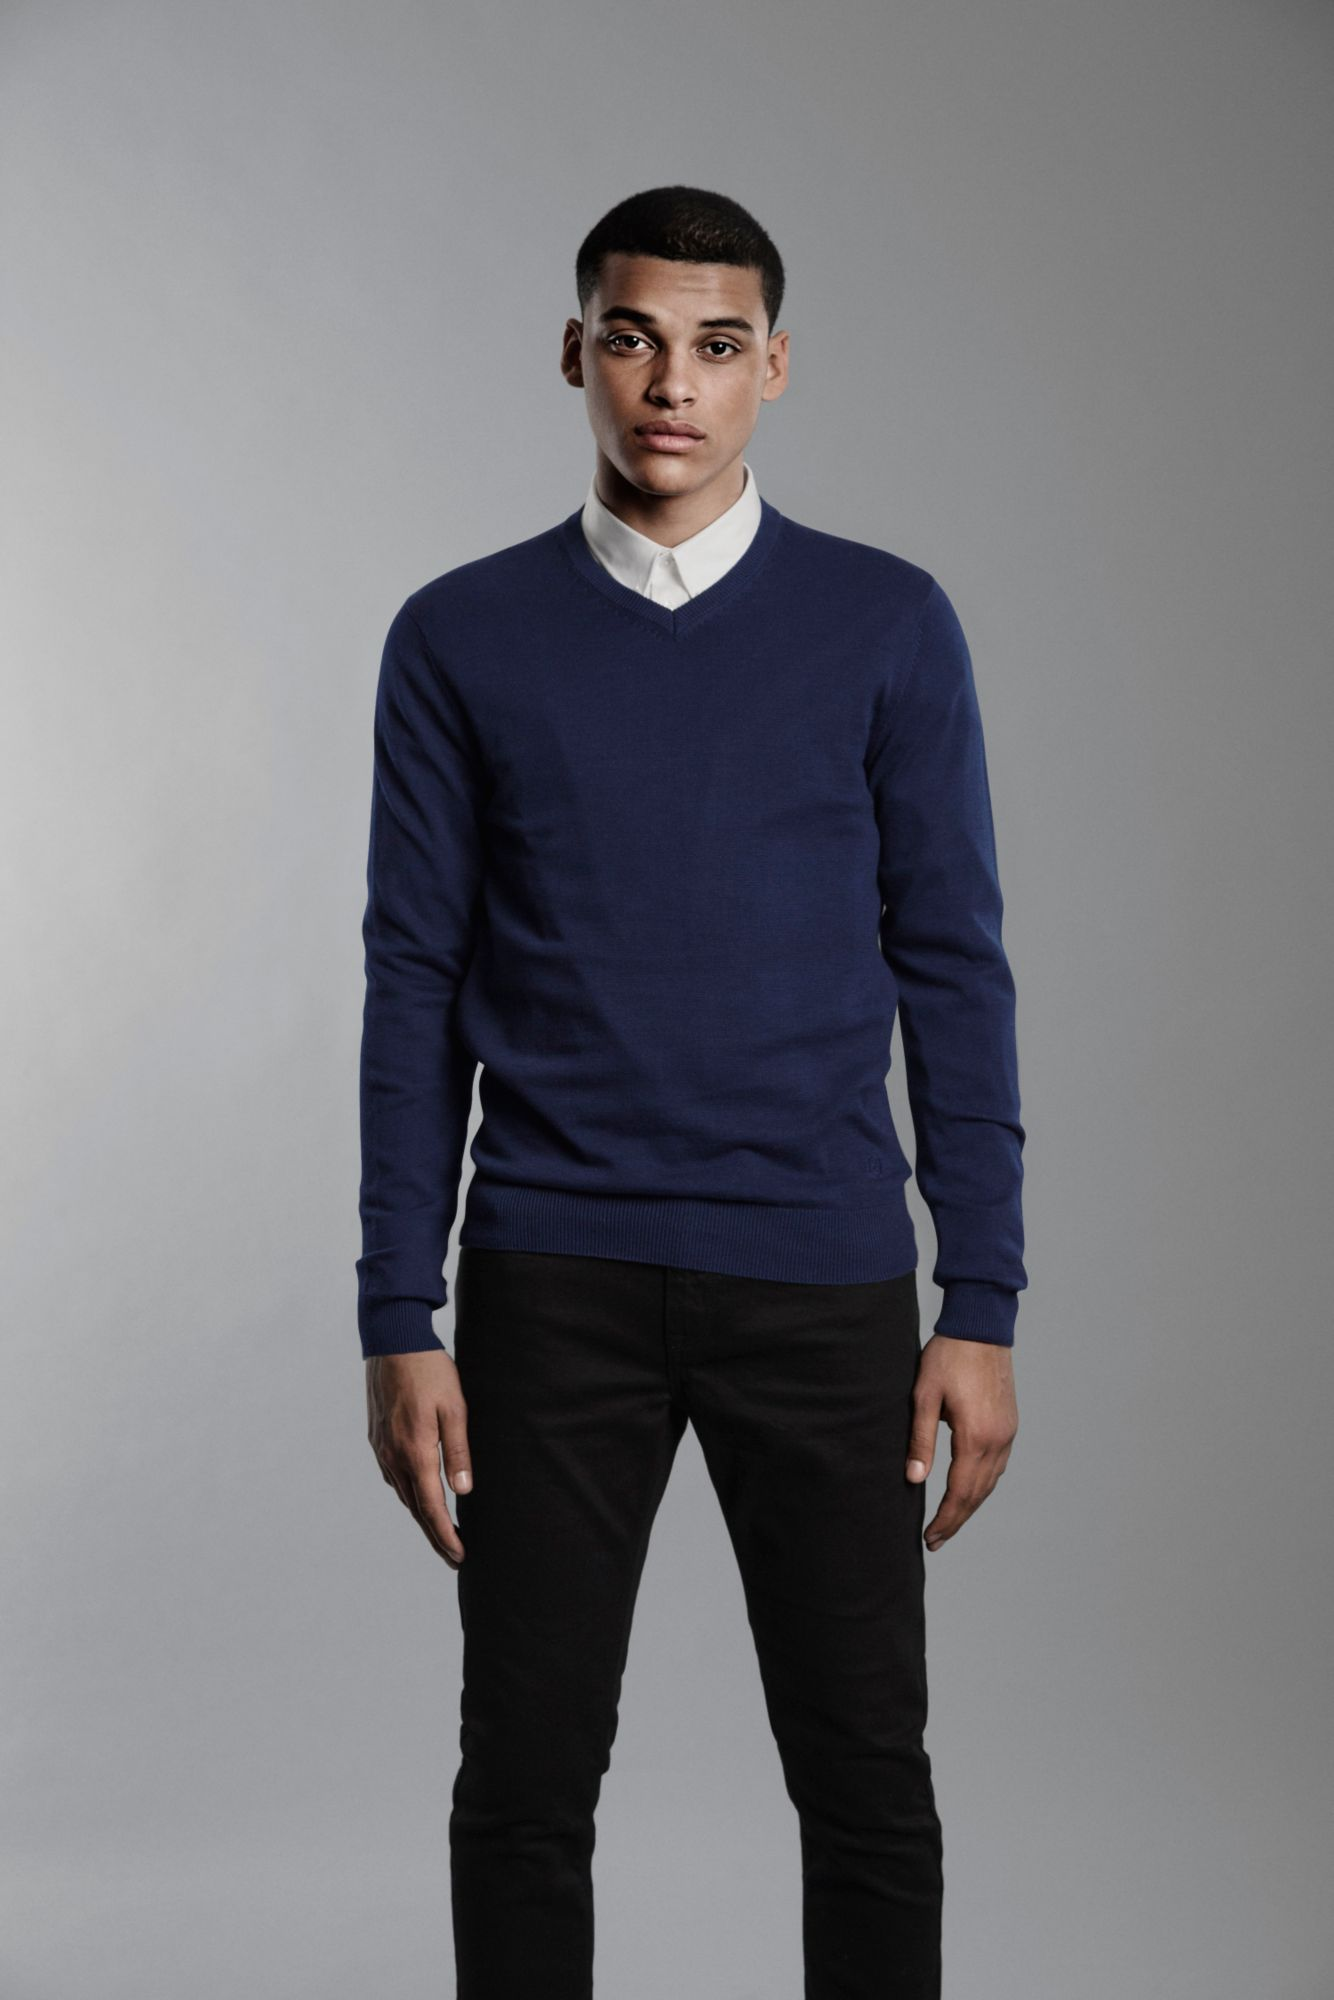 CASUAL FRIDAY Casual Friday Pullover